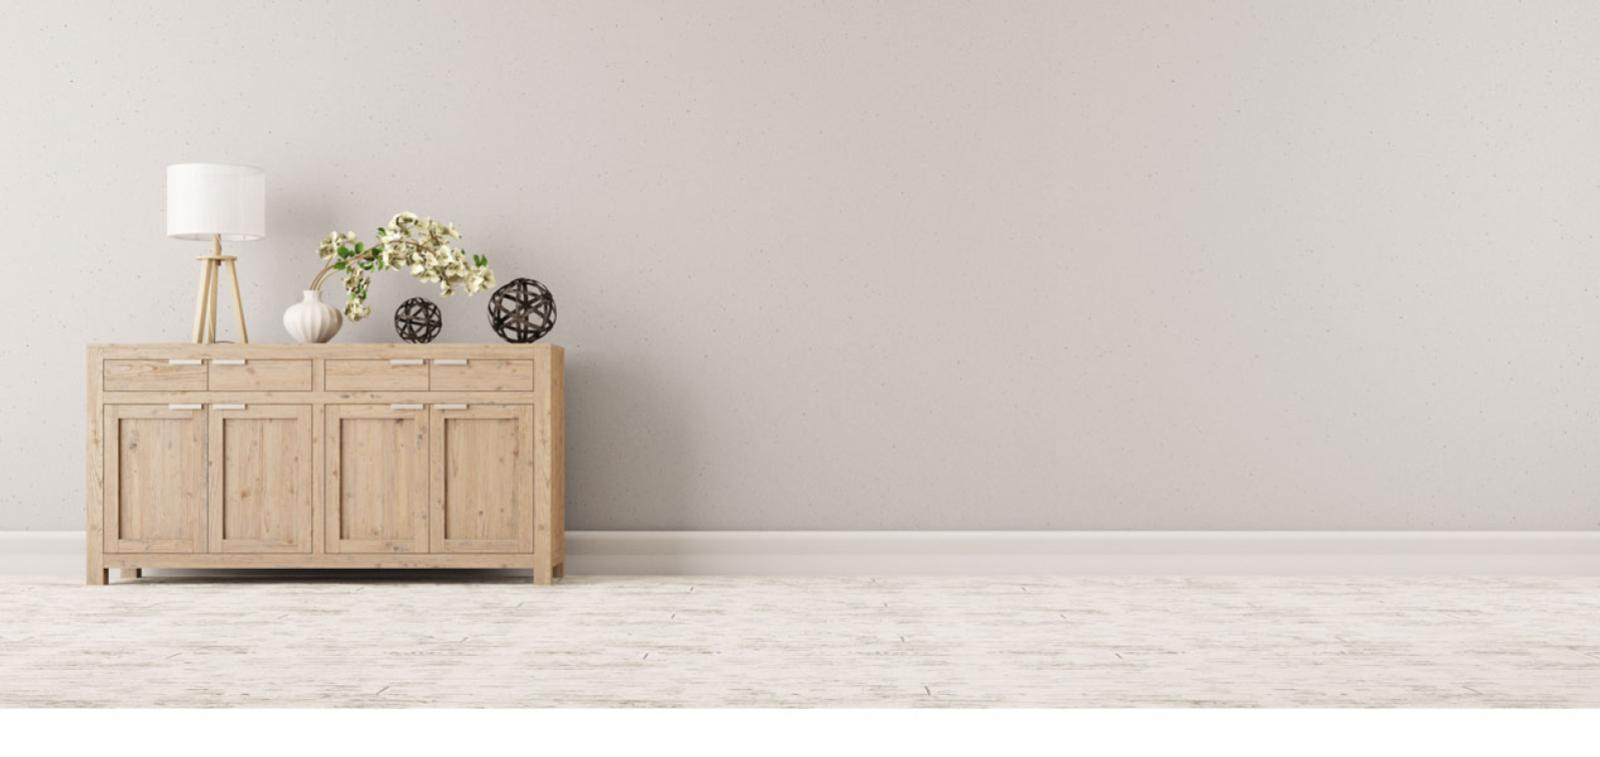 A chest of drawers with a lamp against a grey wall.